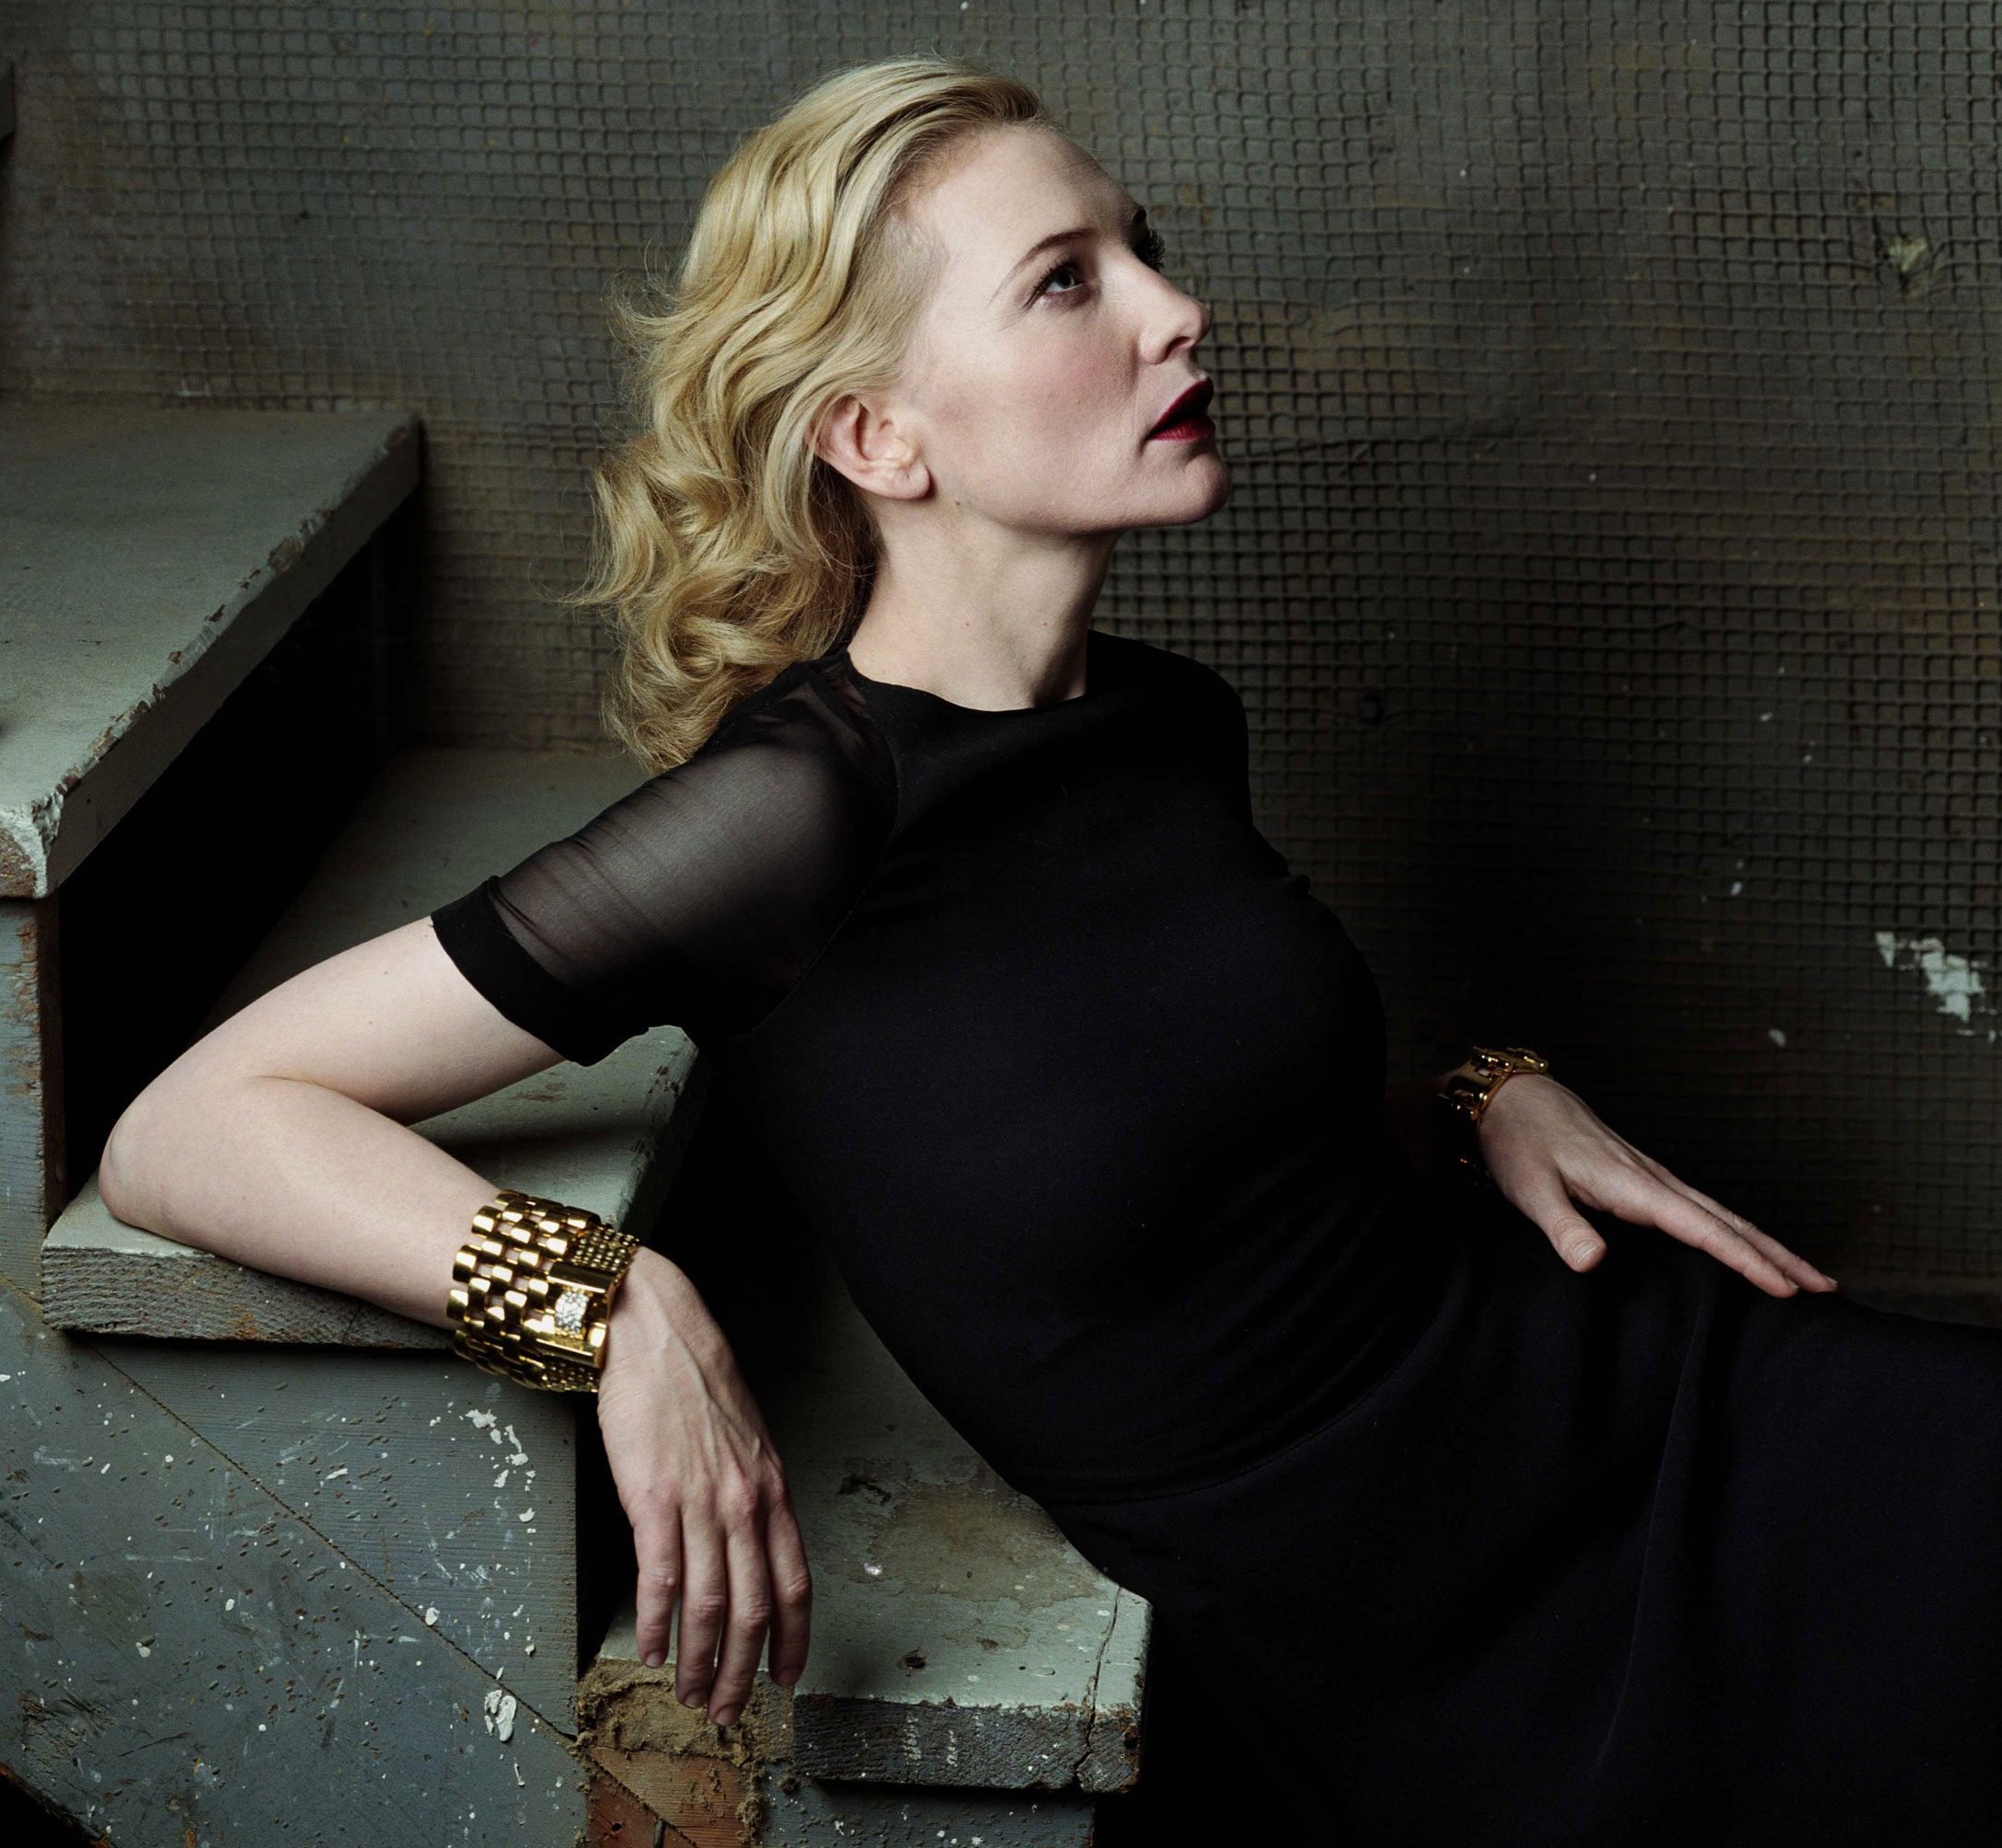 Cate Blanchett: Steal Her Style on vickiarcher.com